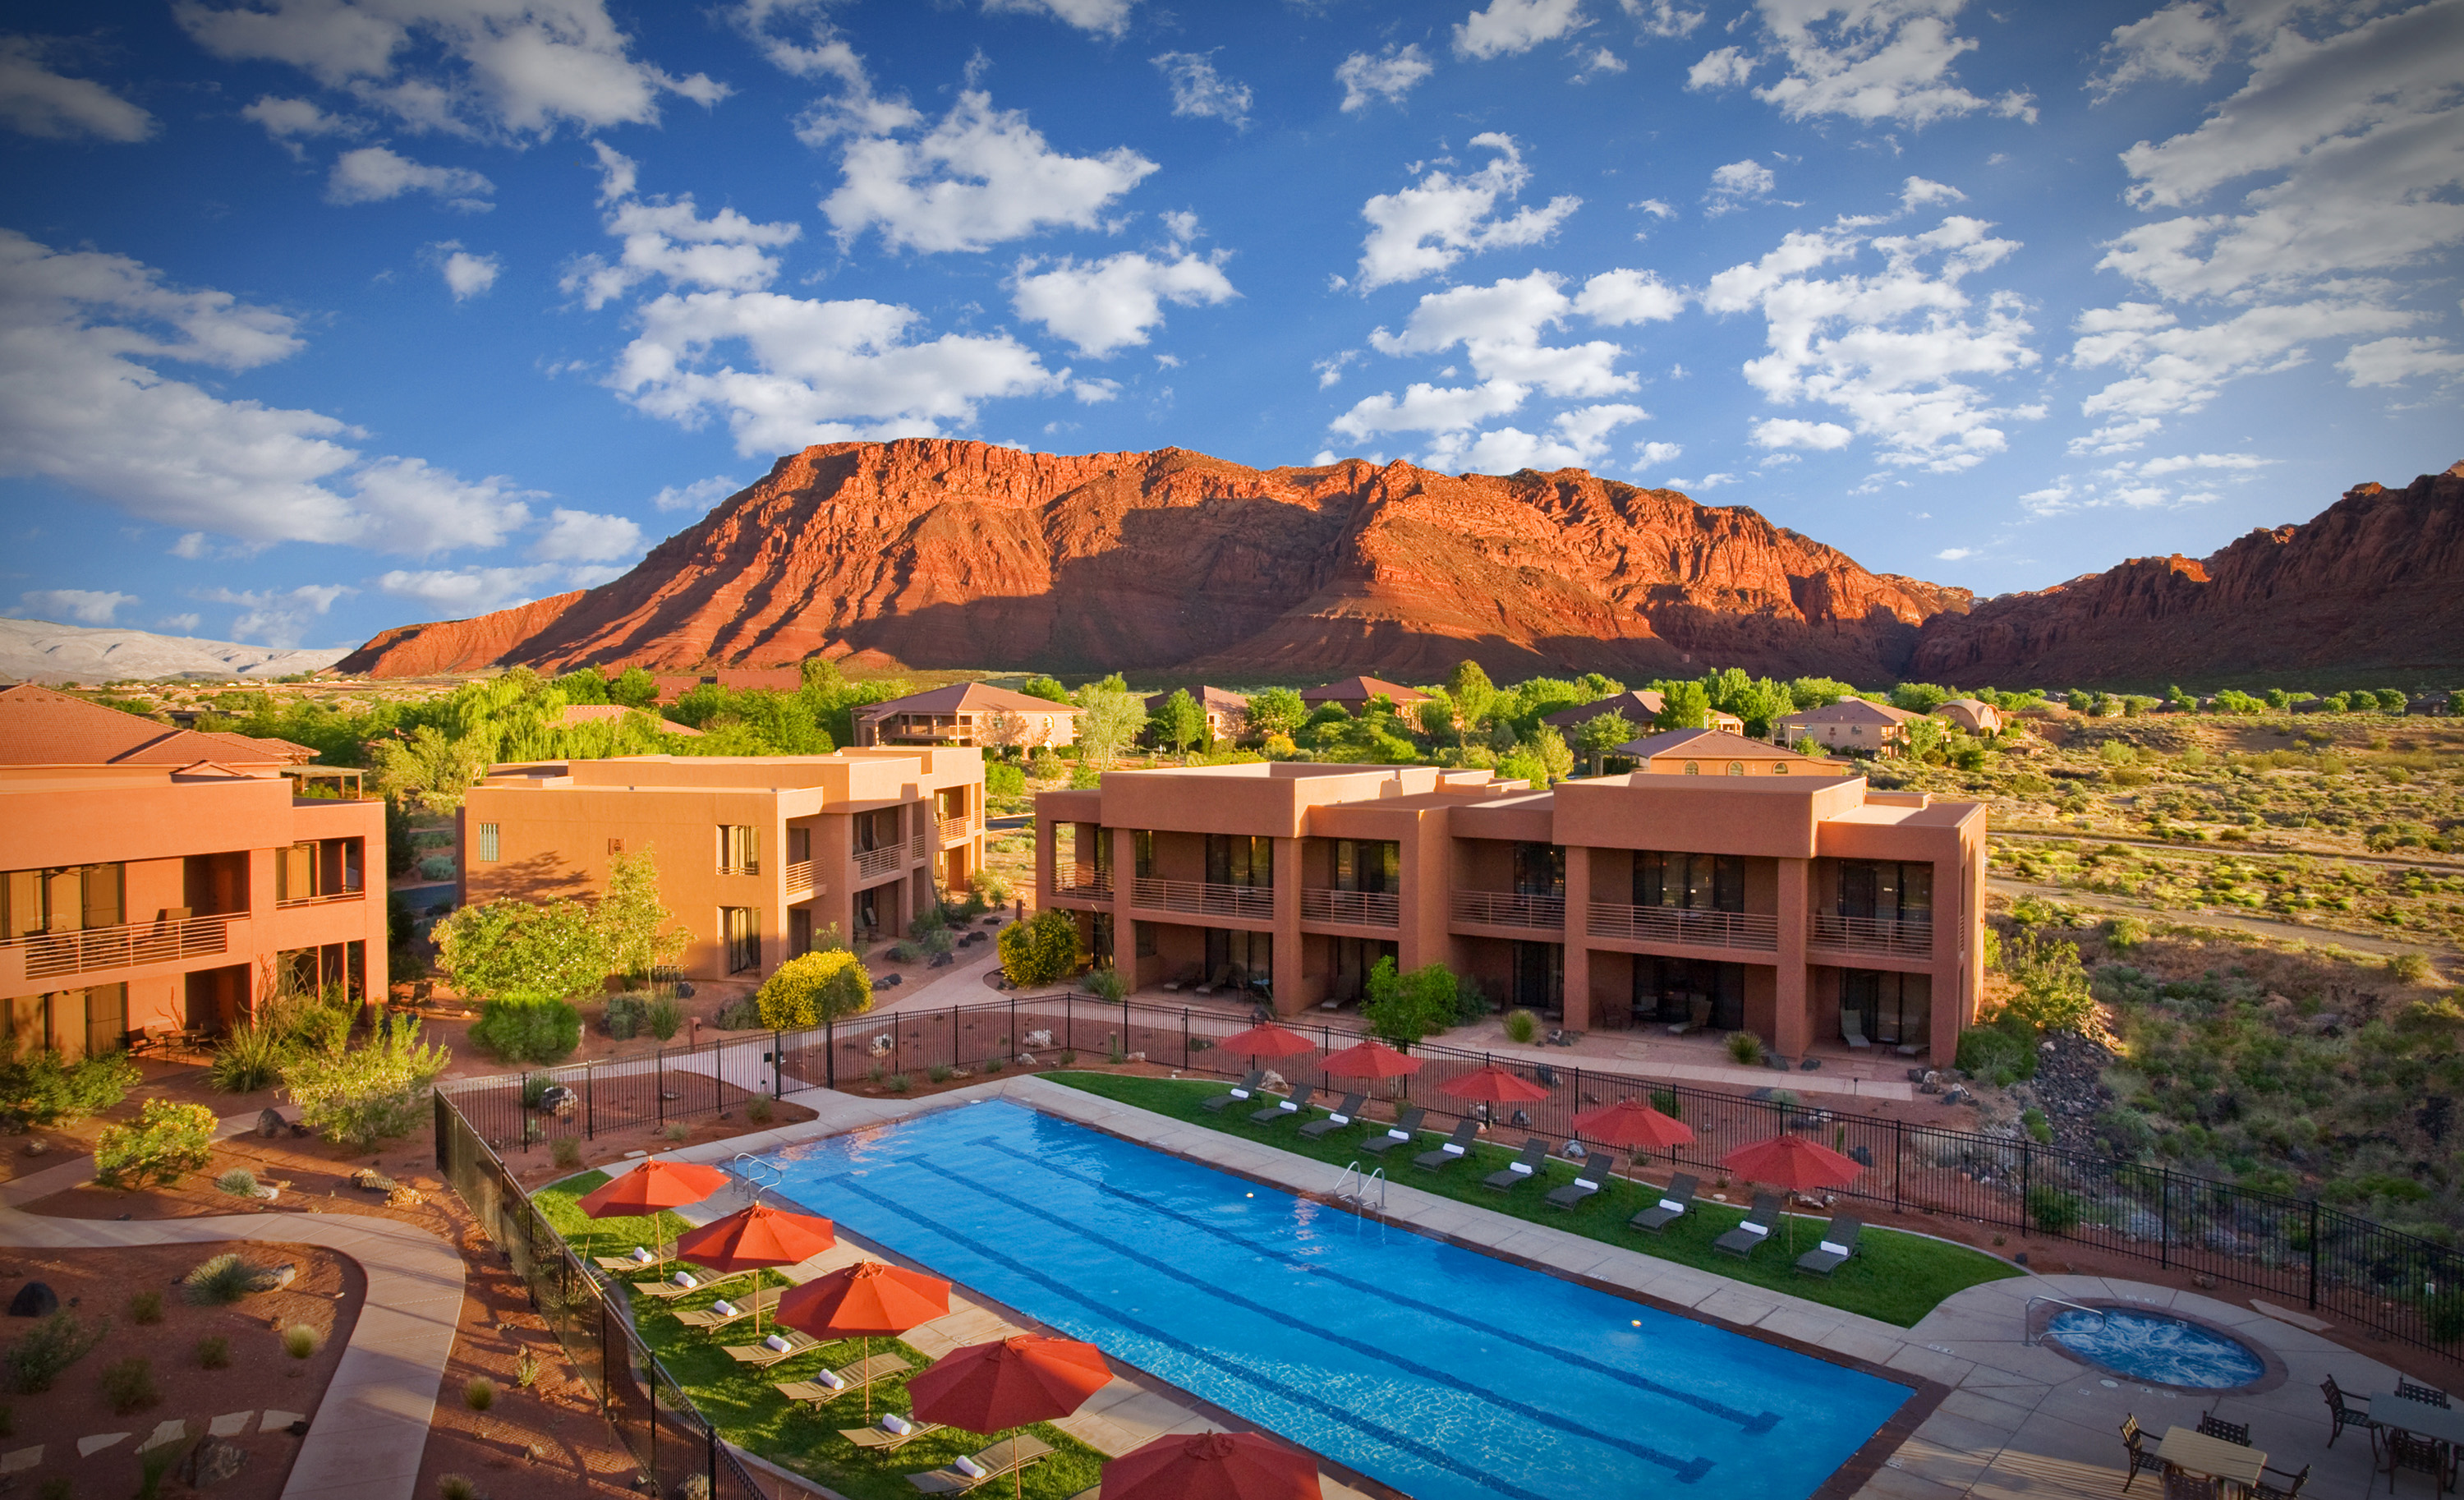 dtc red mountain spa various photos | outdoor sports guide magazine